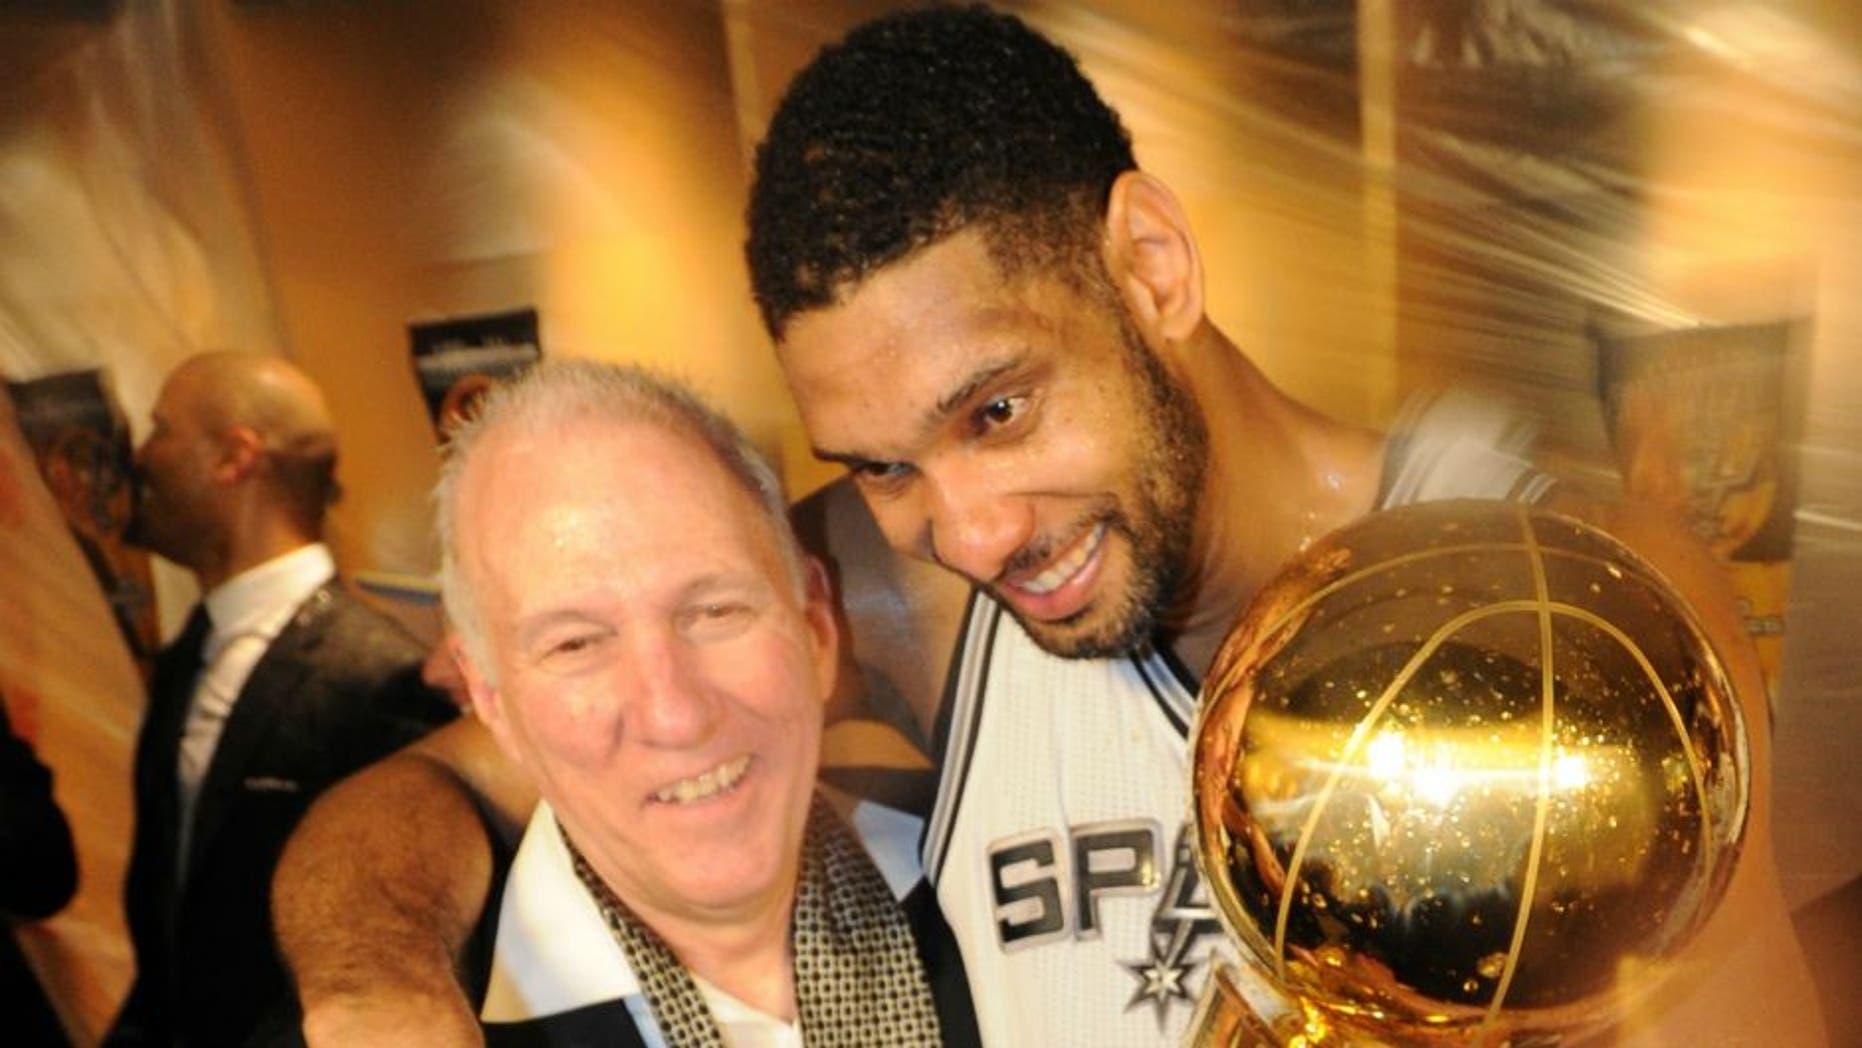 SAN ANTONIO, TX - JUNE 15: Tim Duncan #21 and Head Coach Gregg Popovich of the San Antonio Spurs celebrates after winning the NBA Championship against the Miami Heat during Game Five of the 2014 NBA Finals between the Miami Heat and San Antonio Spurs at AT&T Center on June 15, 2014 in San Antonio, Texas. NOTE TO USER: User expressly acknowledges and agrees that, by downloading and/or using this photograph, user is consenting to the terms and conditions of the Getty Images License Agreement. Mandatory Copyright Notice: Copyright 2014 NBAE (Photo by Andrew D Bernstein/NBAE via Getty Images)